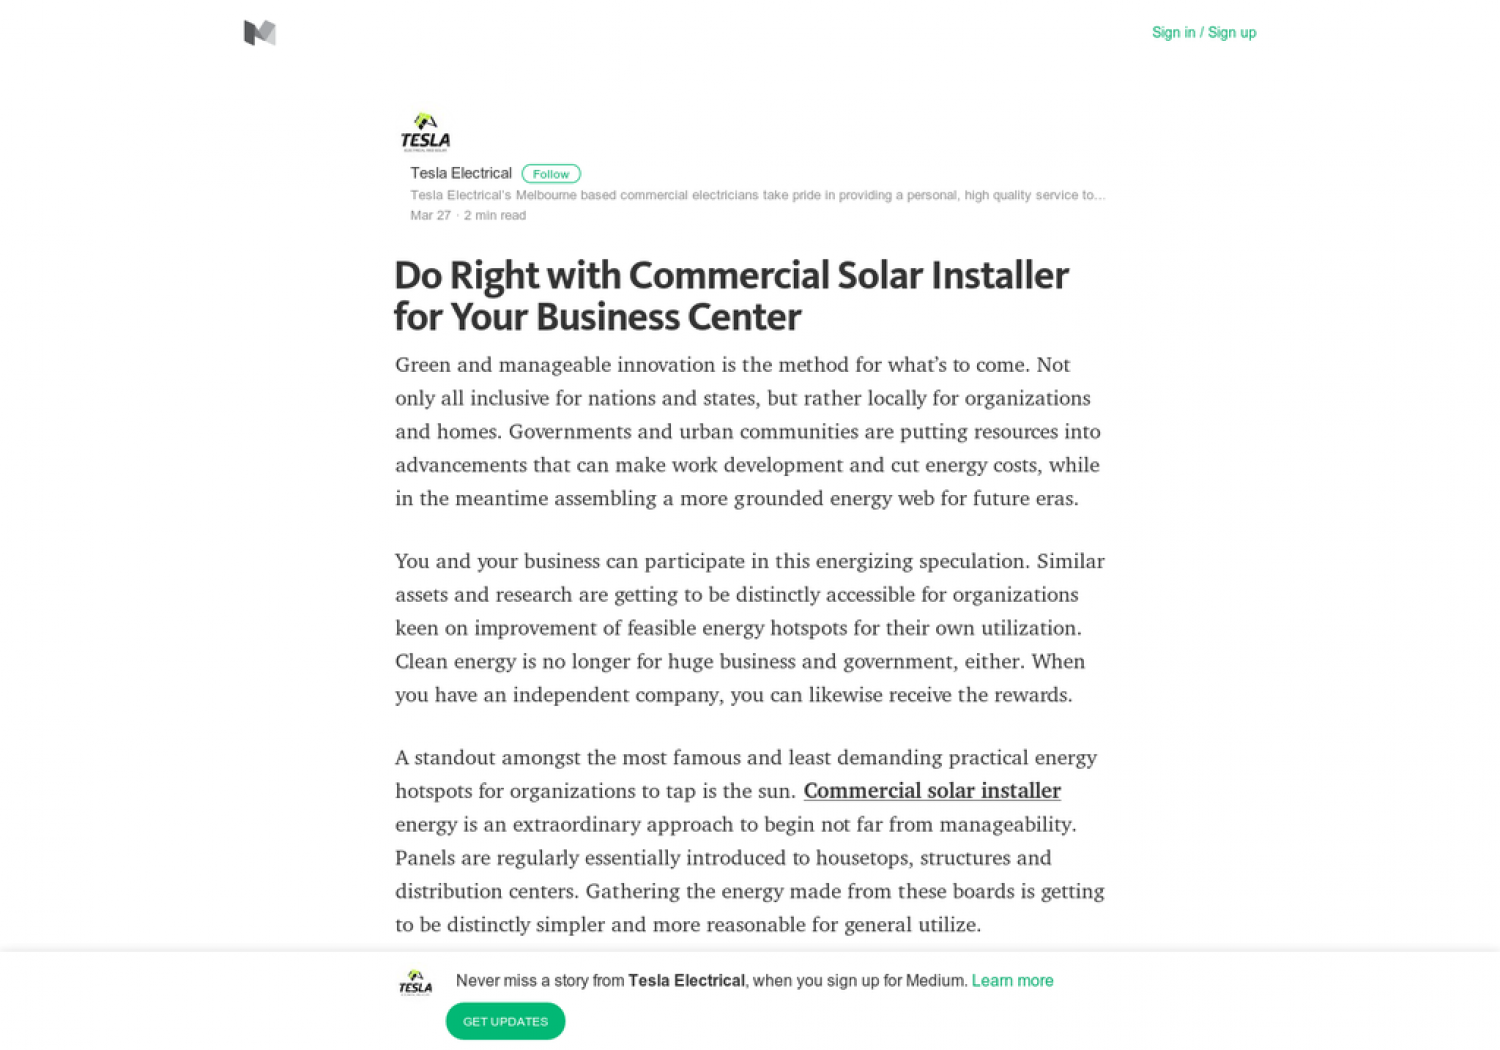 Do Right with Commercial Solar Installer for Your Business Center Infographic